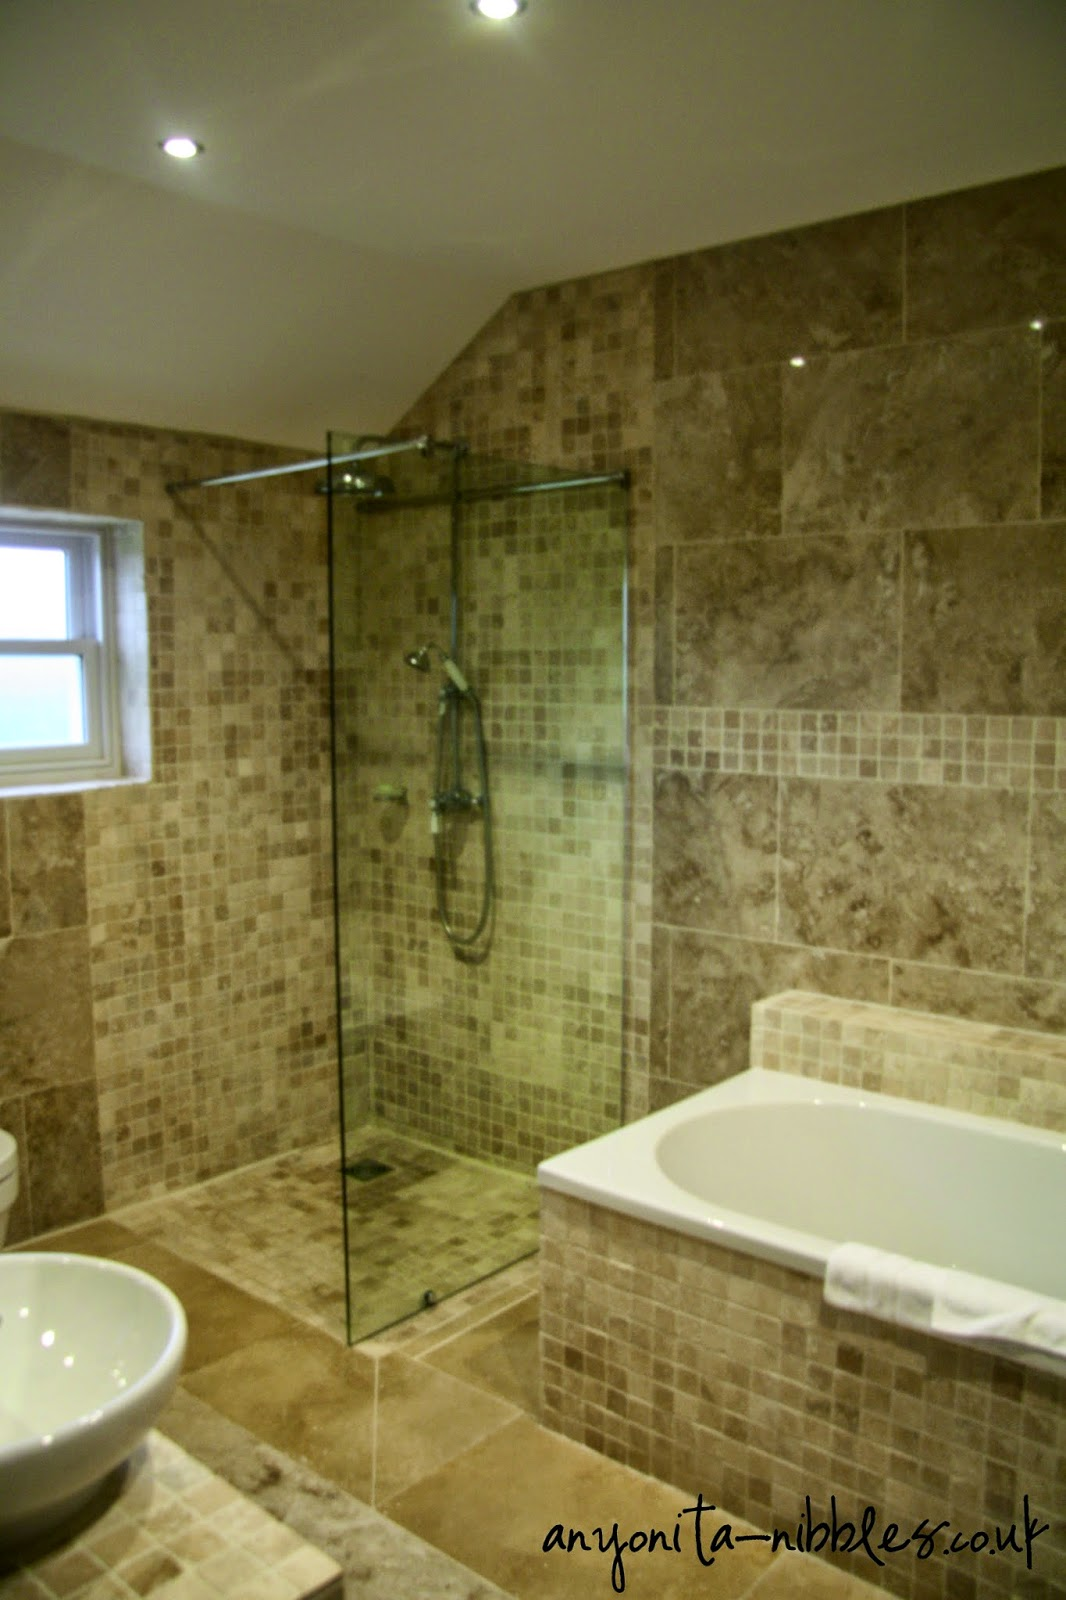 Helmsley 29's luxury bathroom at Ox Pasture Hall Hotel | Anyonita-nibbles.co.uk